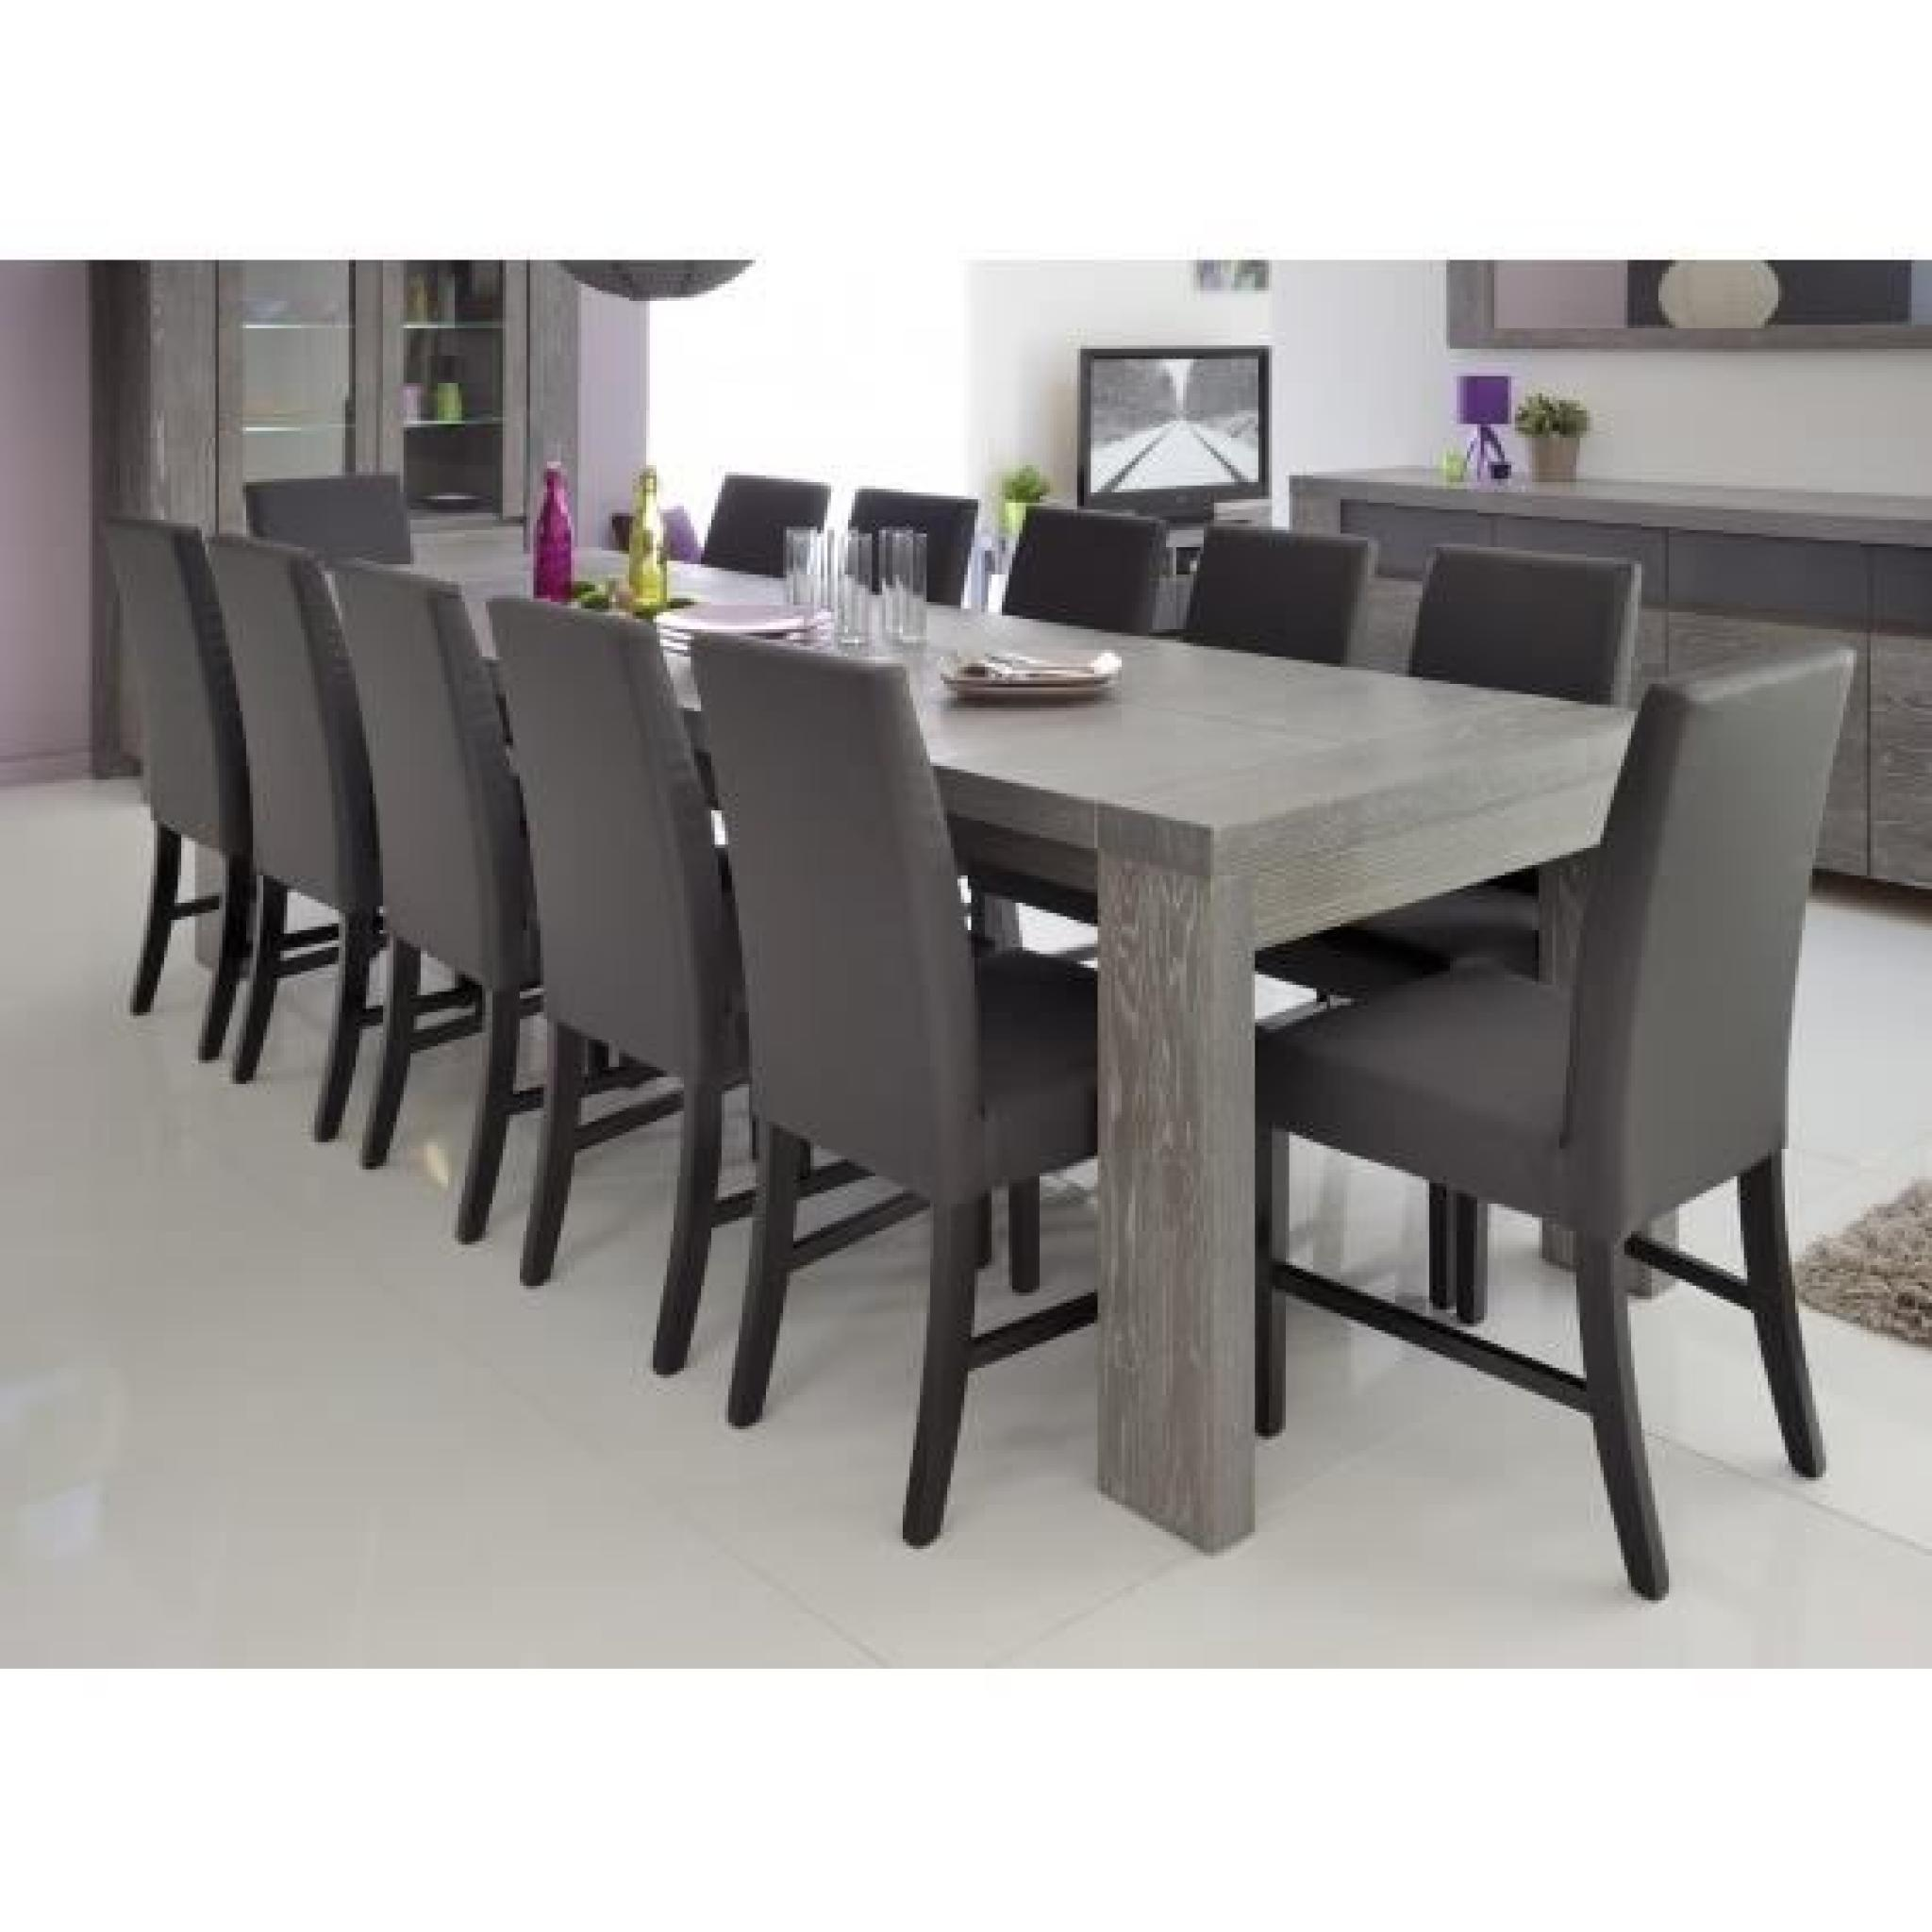 dayton table rectangulaire avec allonges achat vente table salle a manger pas cher couleur. Black Bedroom Furniture Sets. Home Design Ideas